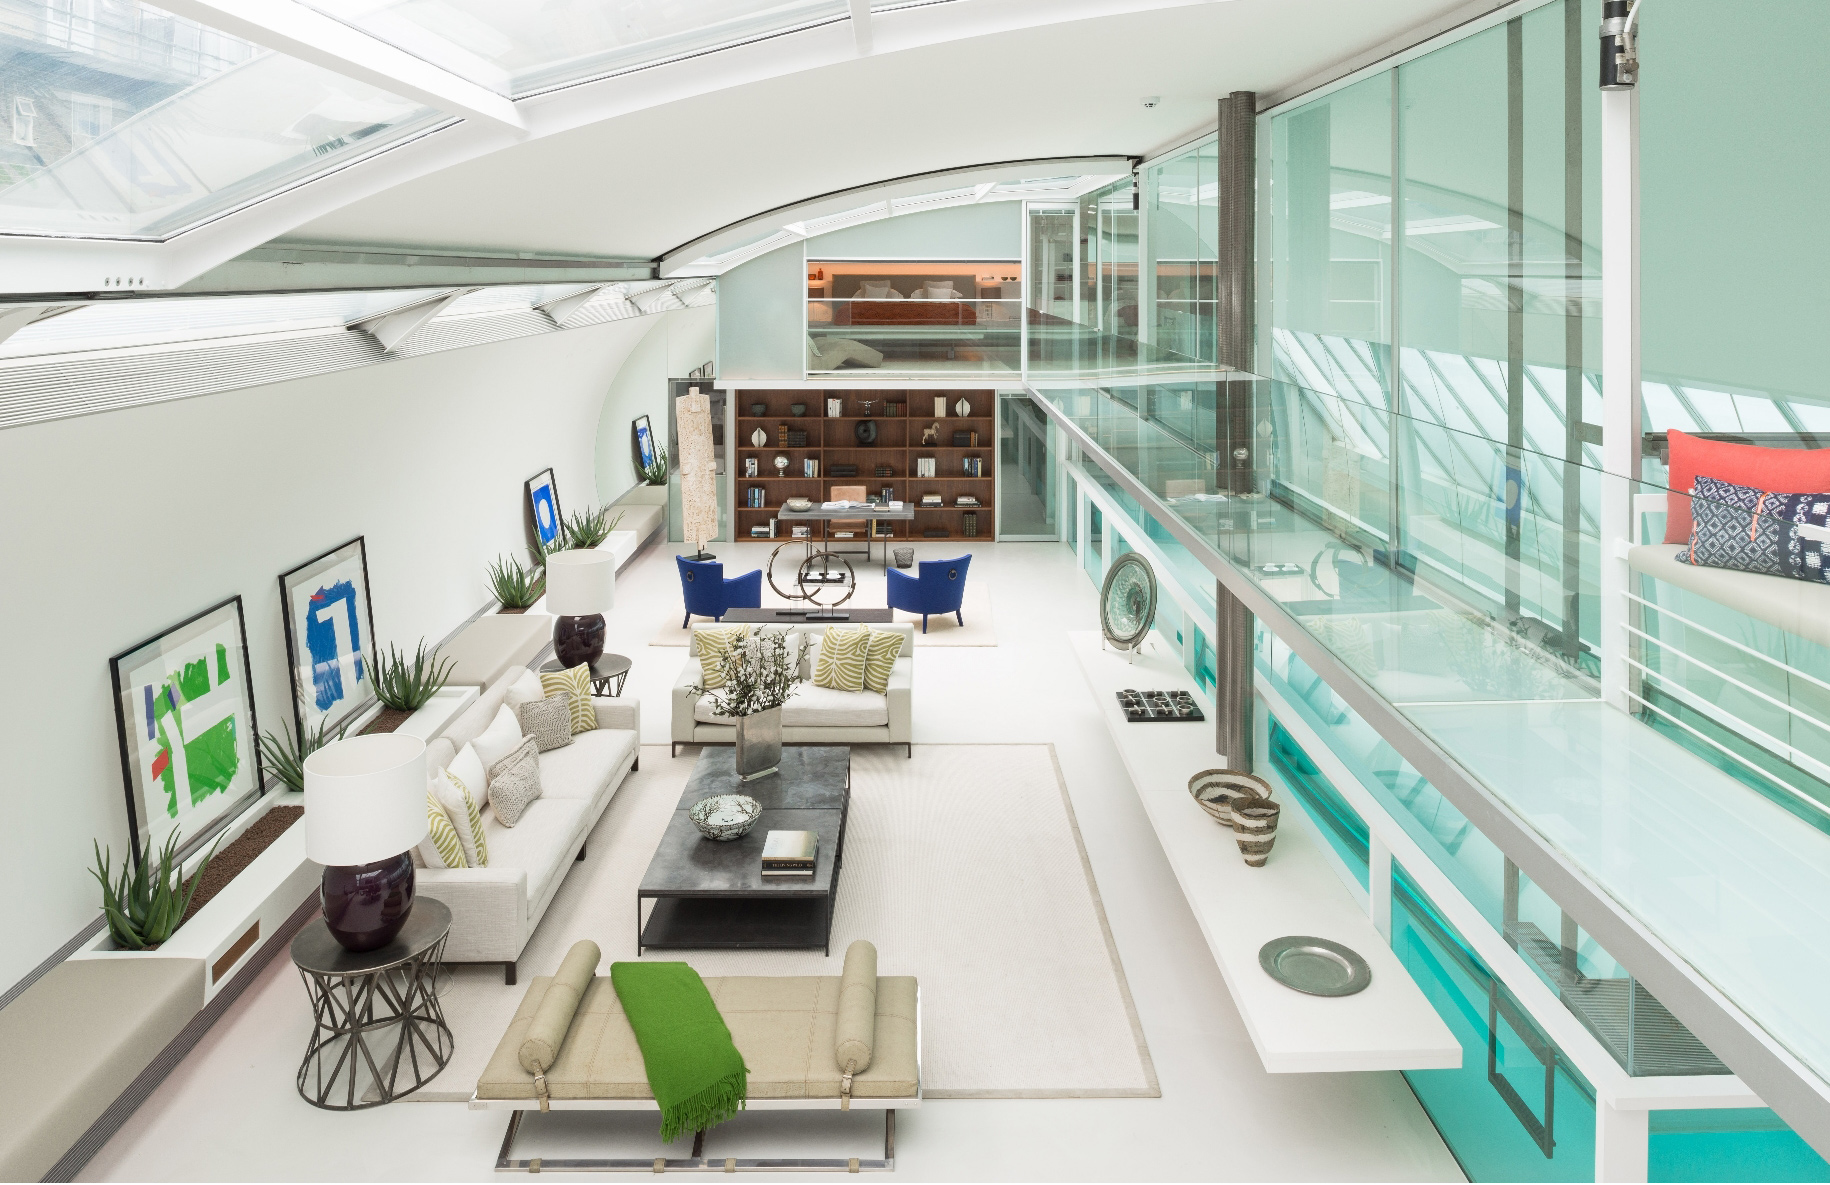 Paxton House - the most unusual London homes for sale right now